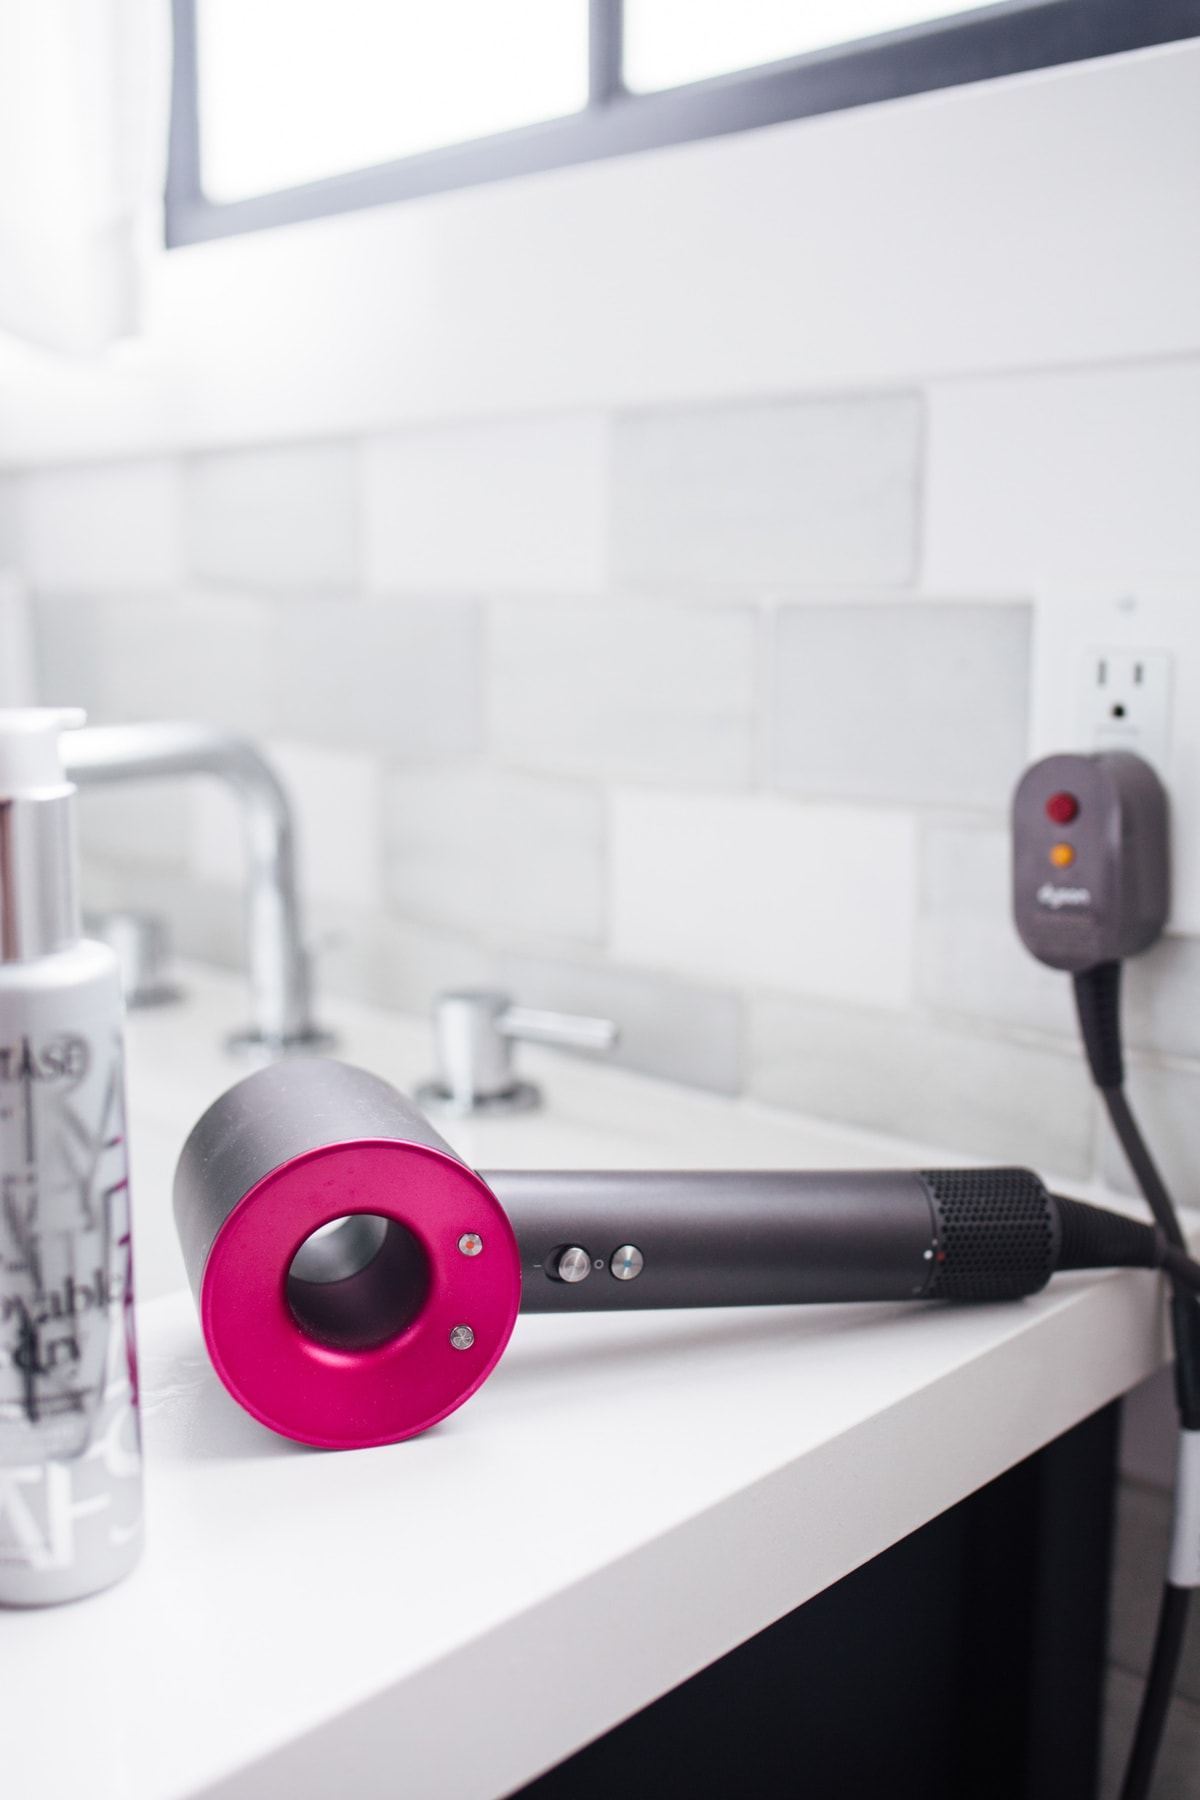 Lowest price EVER on dyson supersonic hair dryer